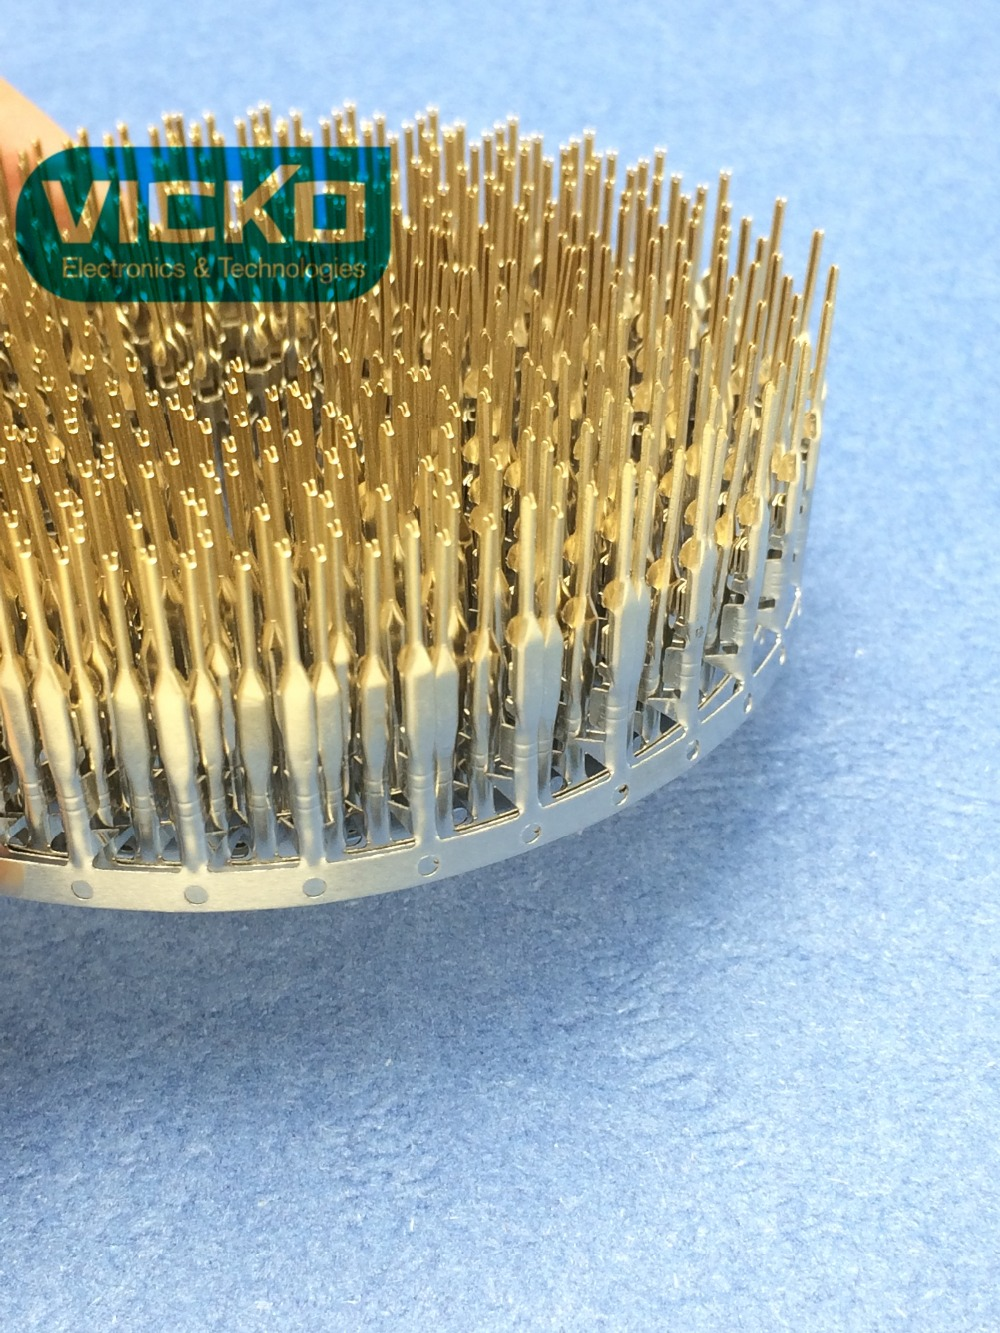 [VK] 500pcs Male Pin Dupont Connector Gold Plated 2.54mm